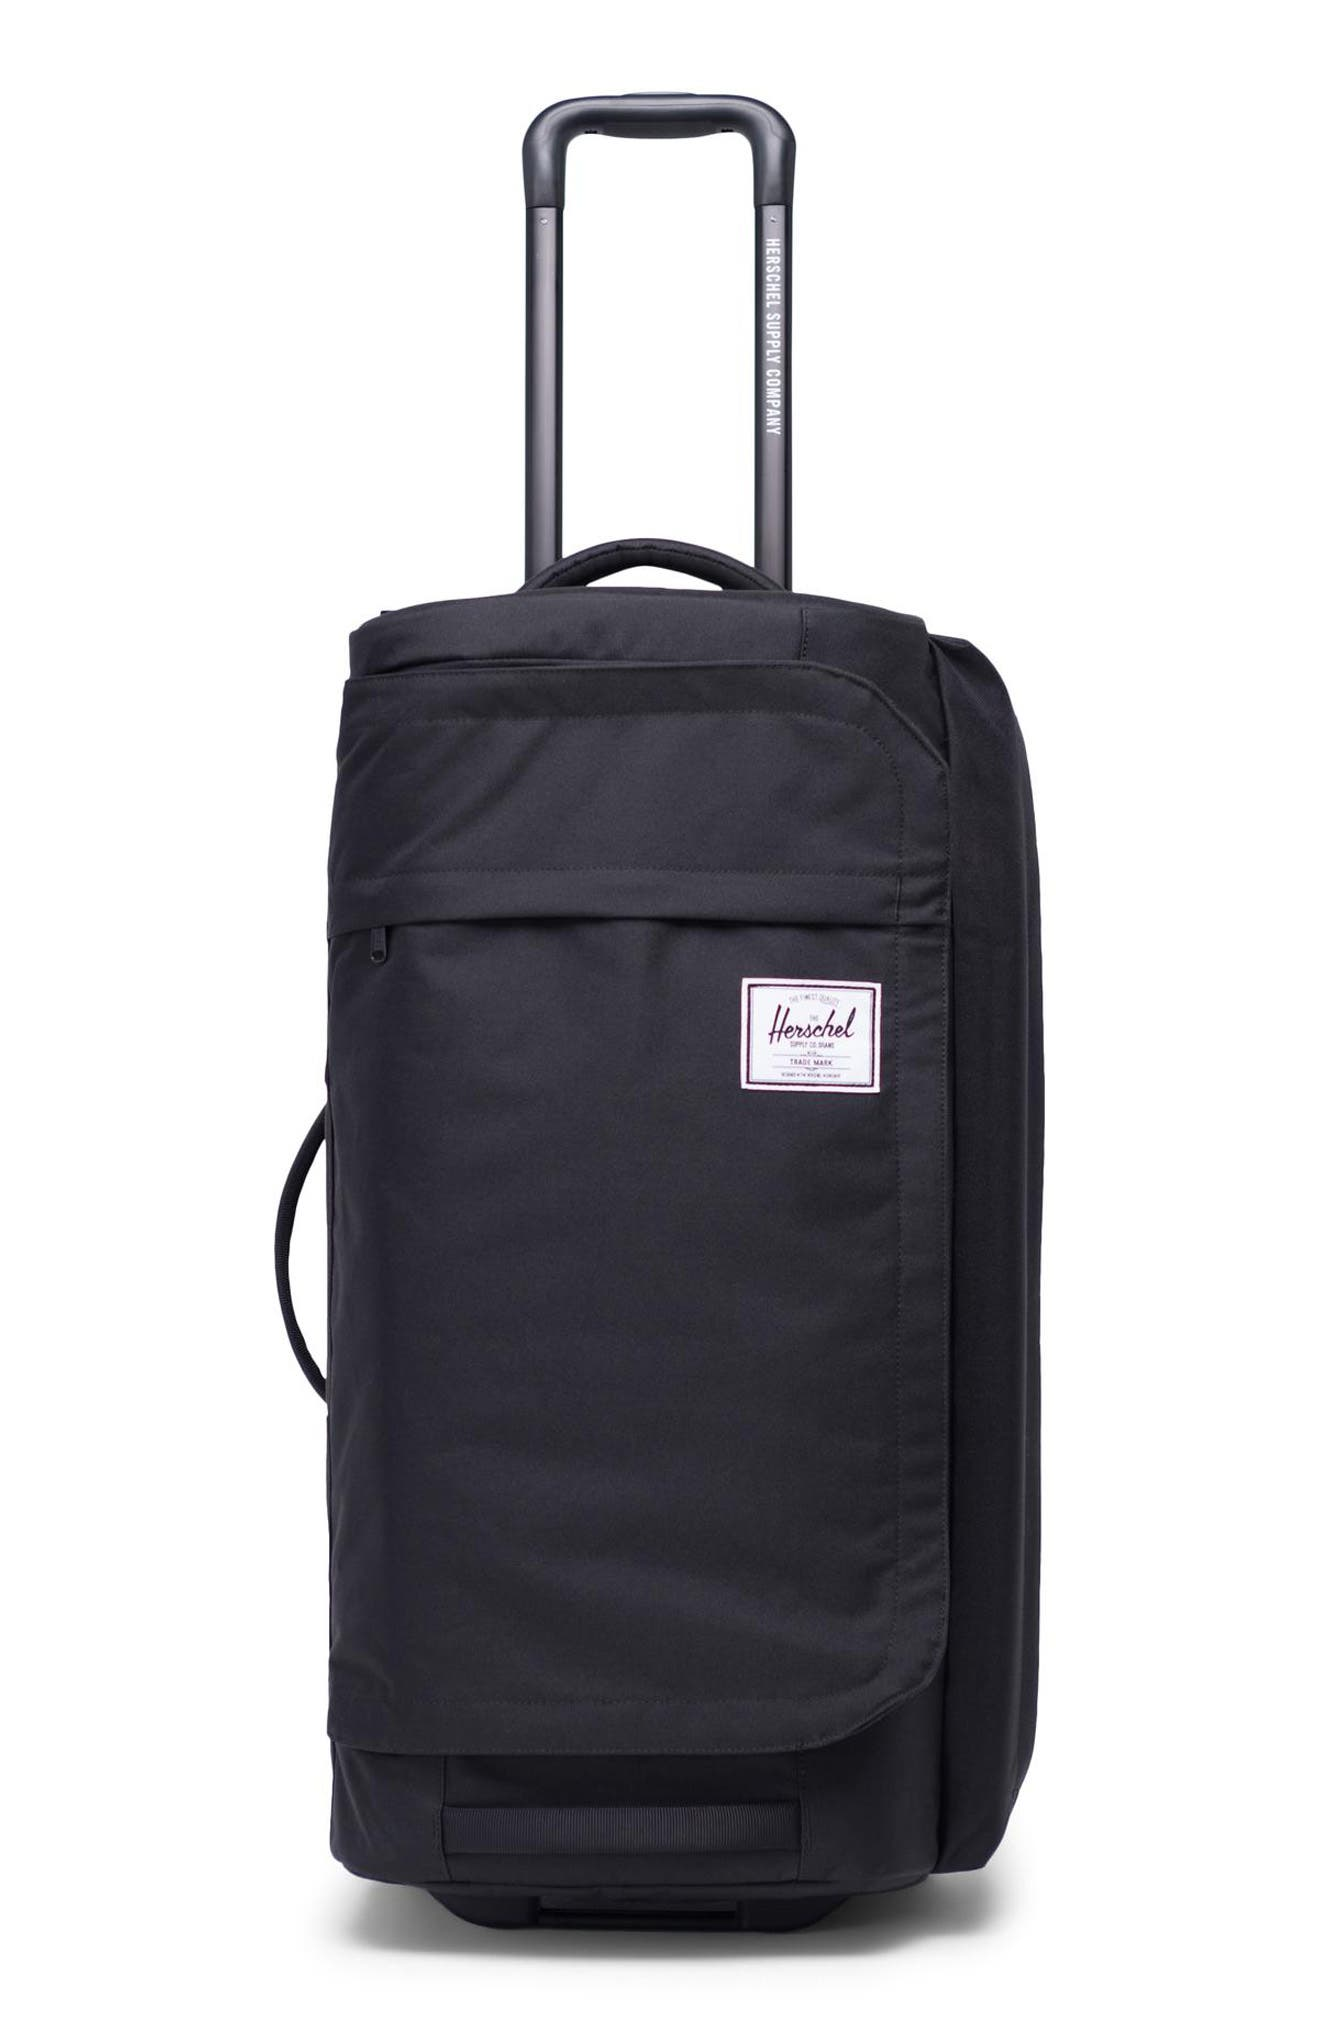 HERSCHEL SUPPLY CO. Wheelie Outfitter 24-Inch Duffle Bag, Main, color, BLACK